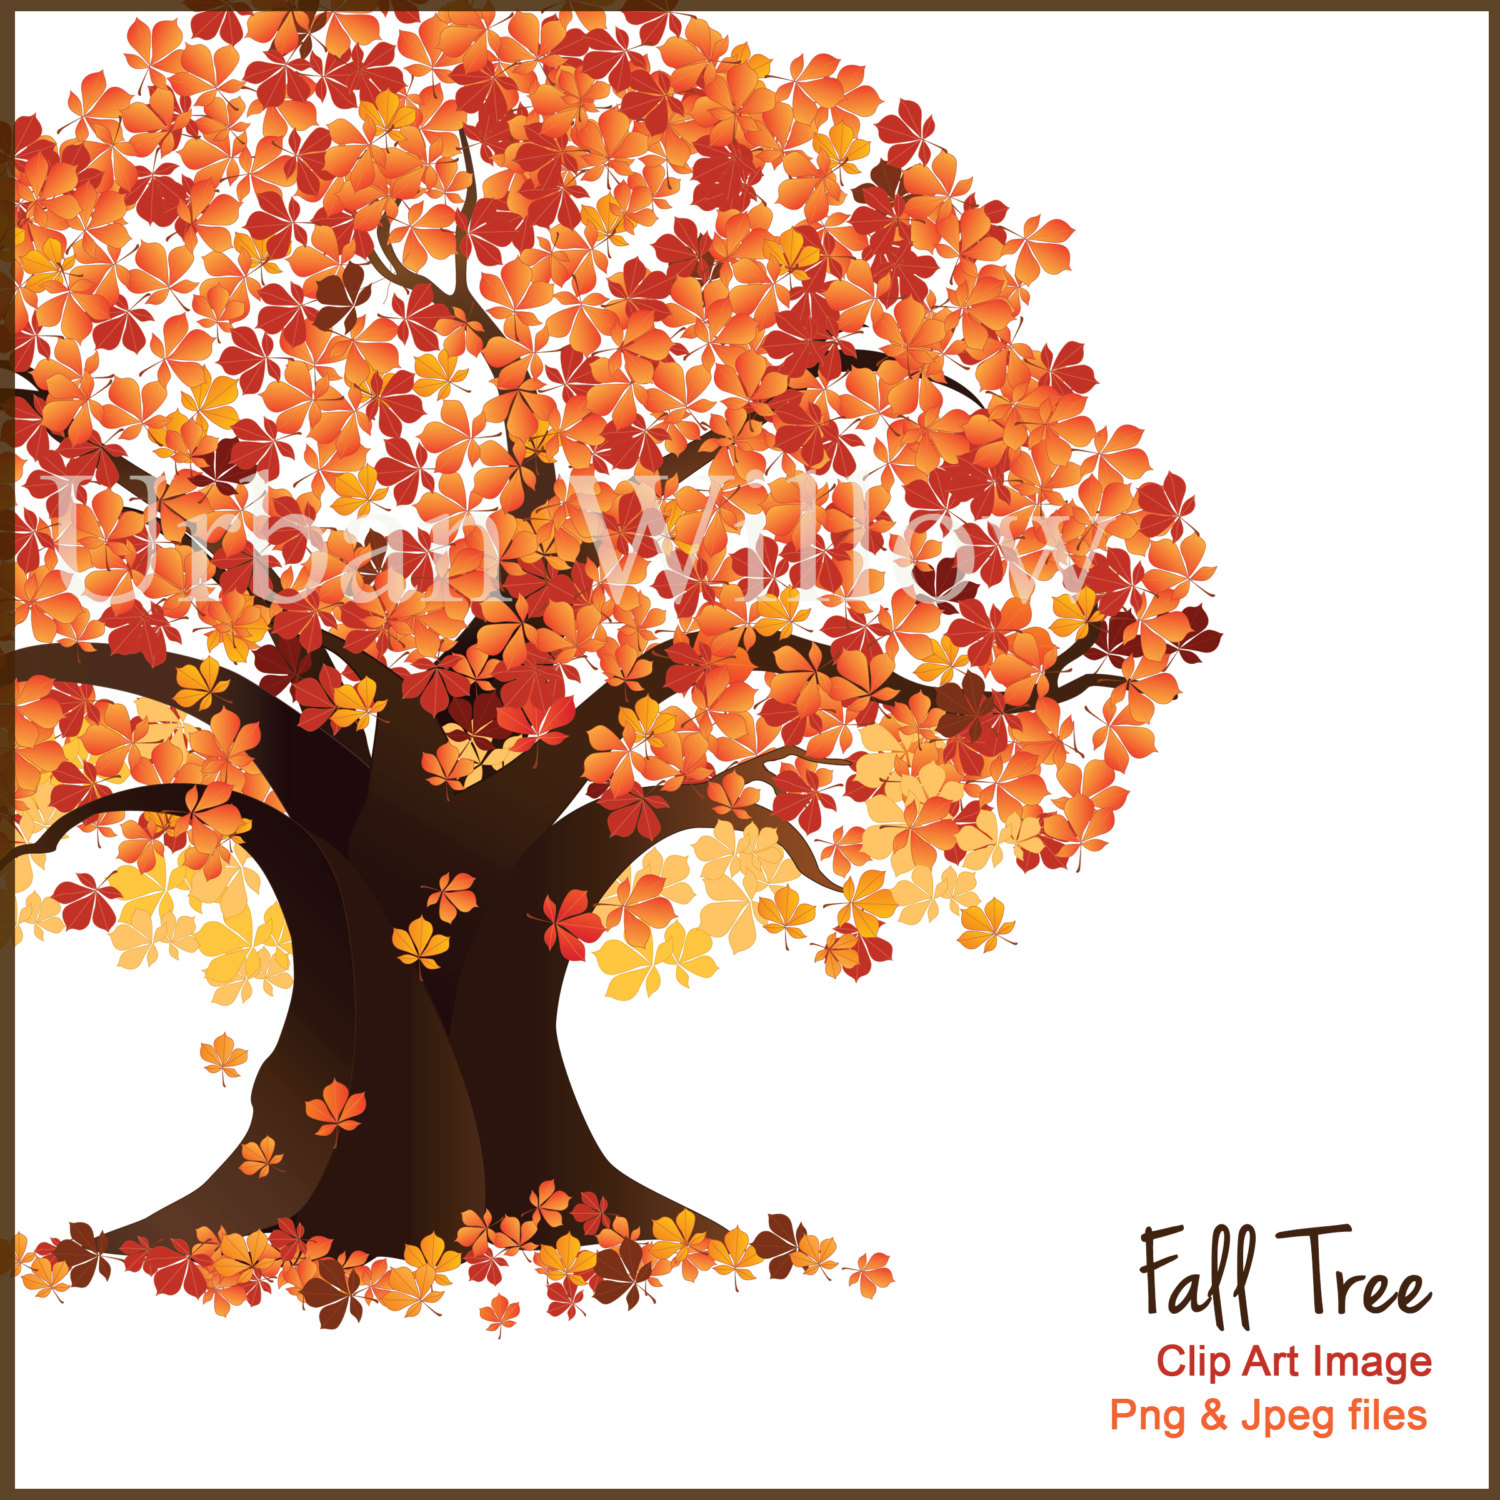 Fall Cartoon Wallpaper Clipart Maple Tree With Falling Seeds 20 Free Cliparts